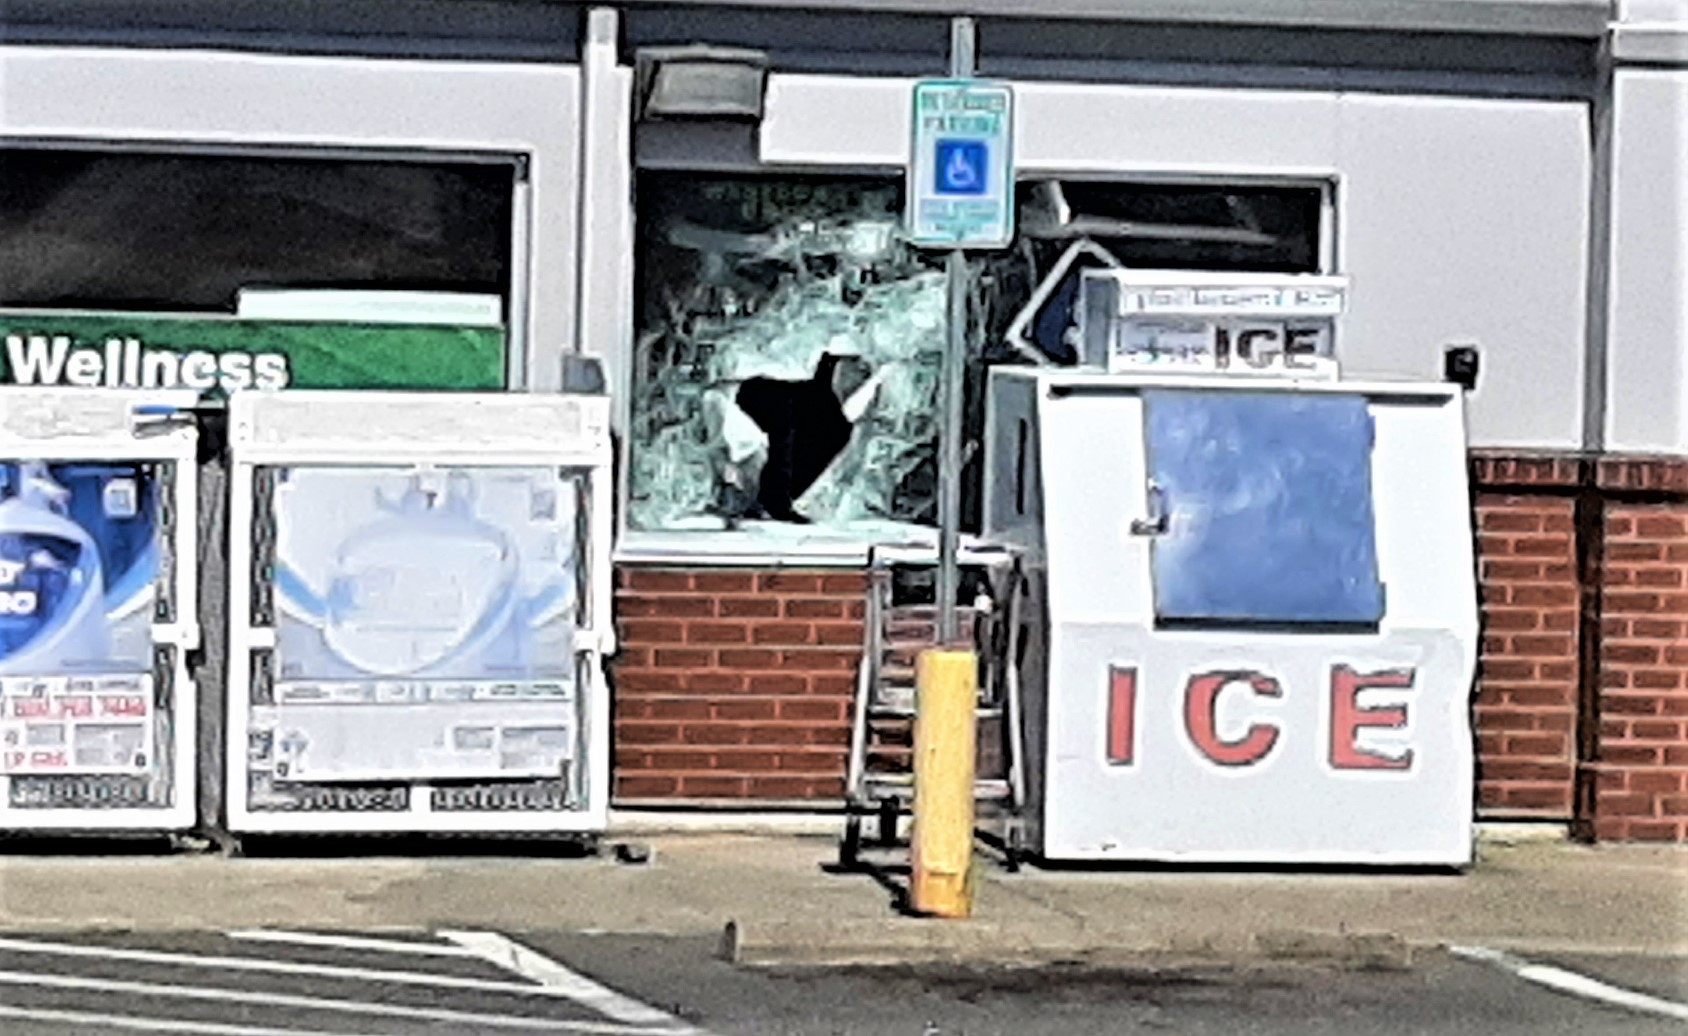 A hole used by burglars is visible in a window at a business on 3rd Avenue in Ferndale (June 25, 2021). Photo courtesy of a reader